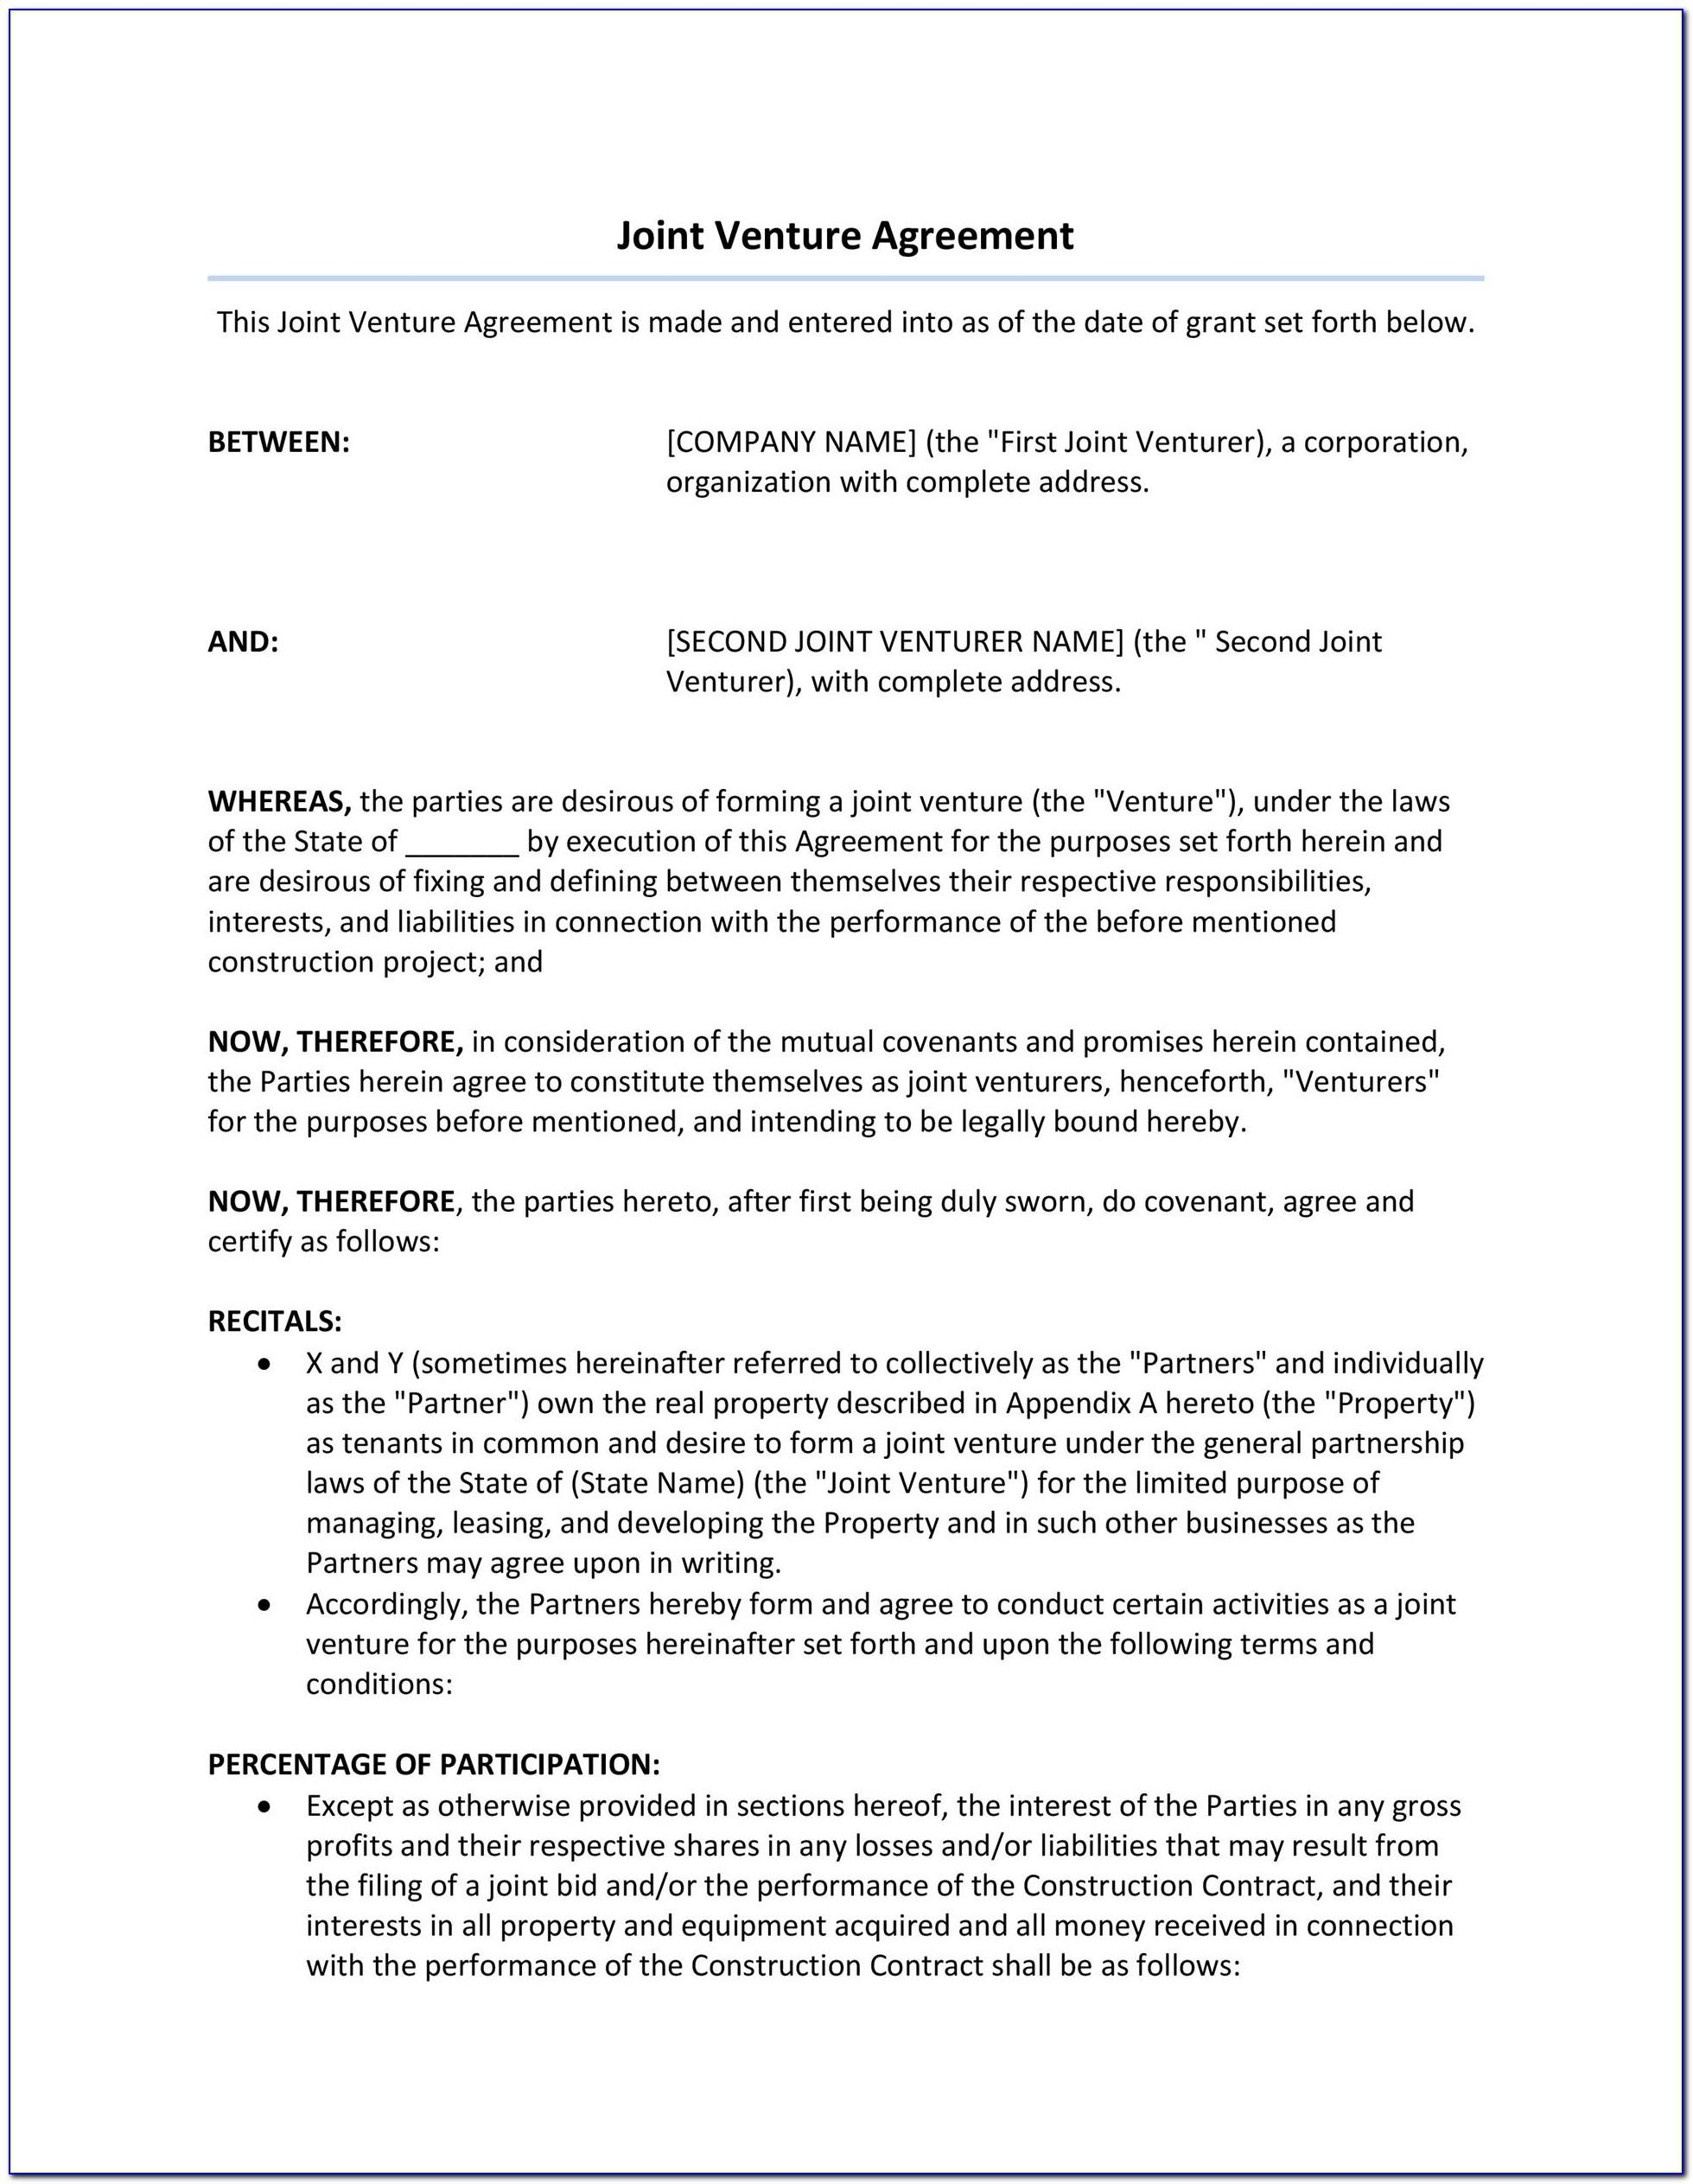 Joint Venture Agreement Template Free Download South Africa